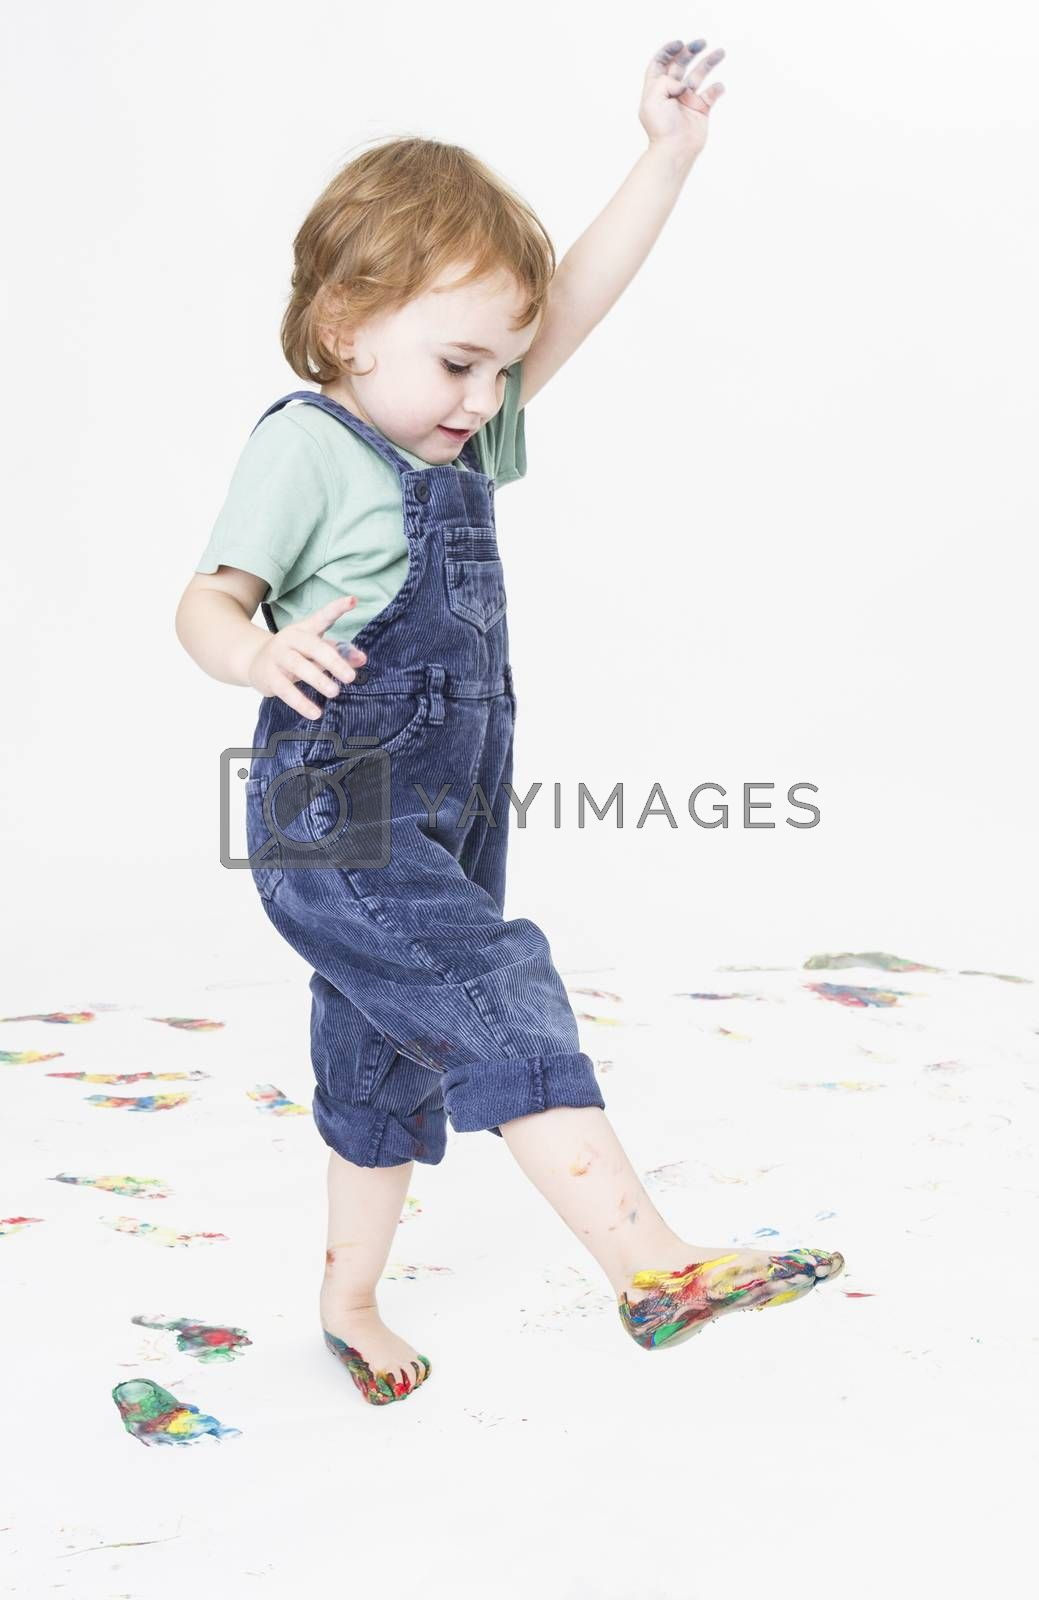 Royalty free image of young child with paint on feet by gewoldi